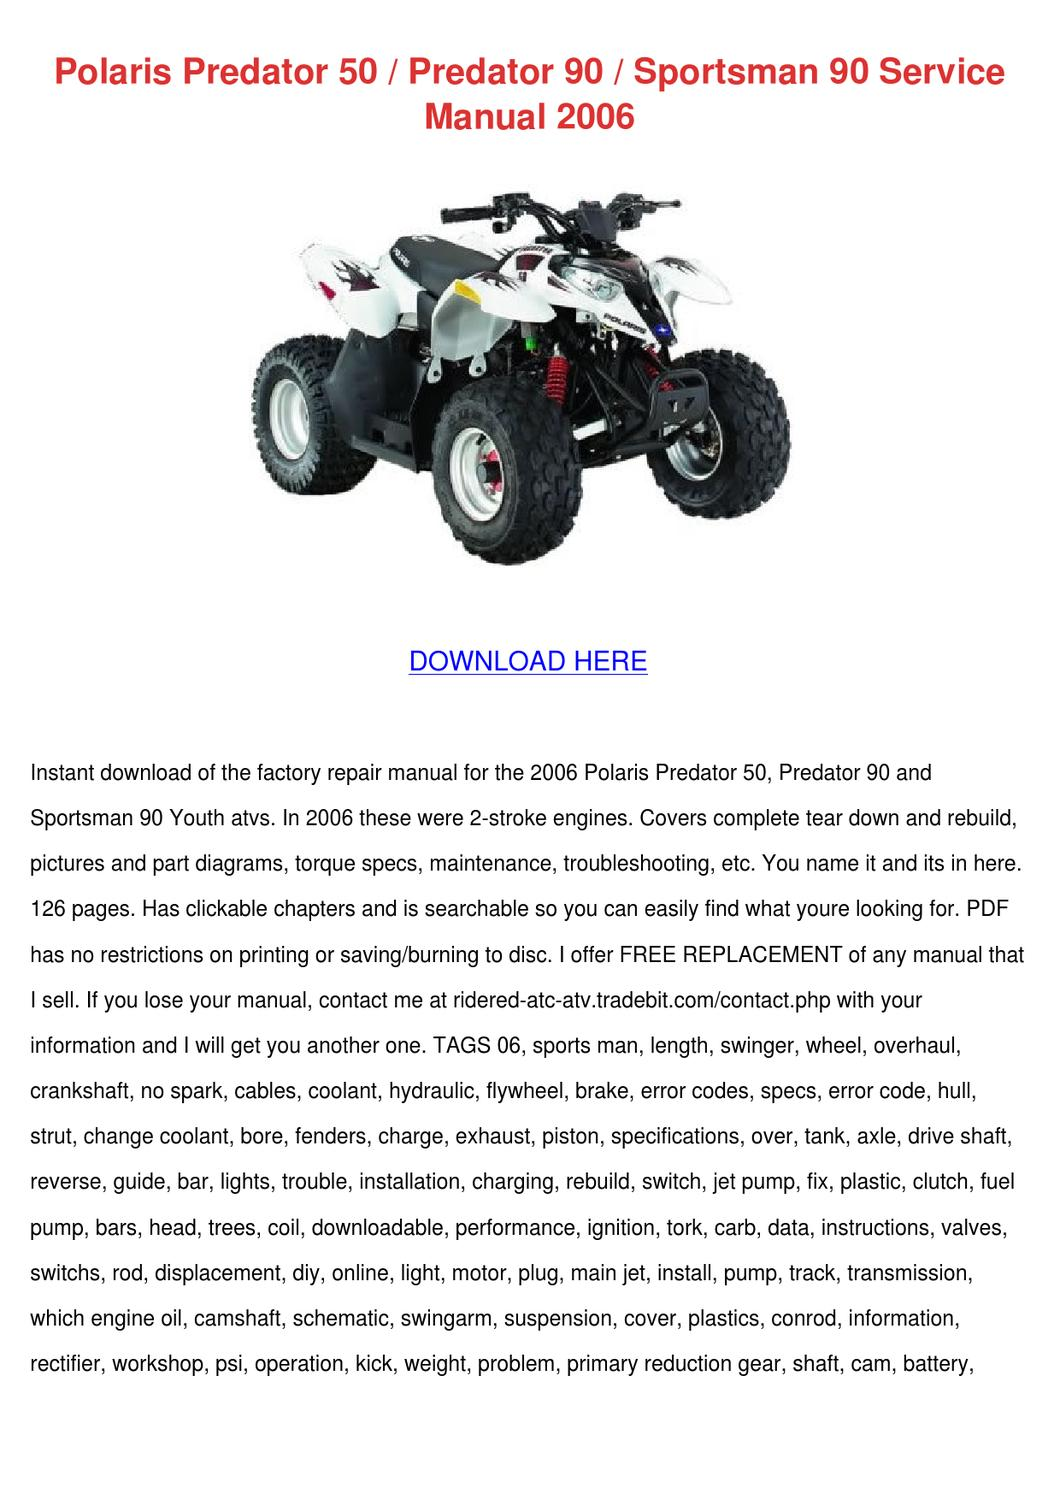 polaris predator 50 predator 90 sportsman 90 by gale deppner issuu rh issuu com polaris predator 90 repair manual download 2004 polaris predator 90 service manual pdf